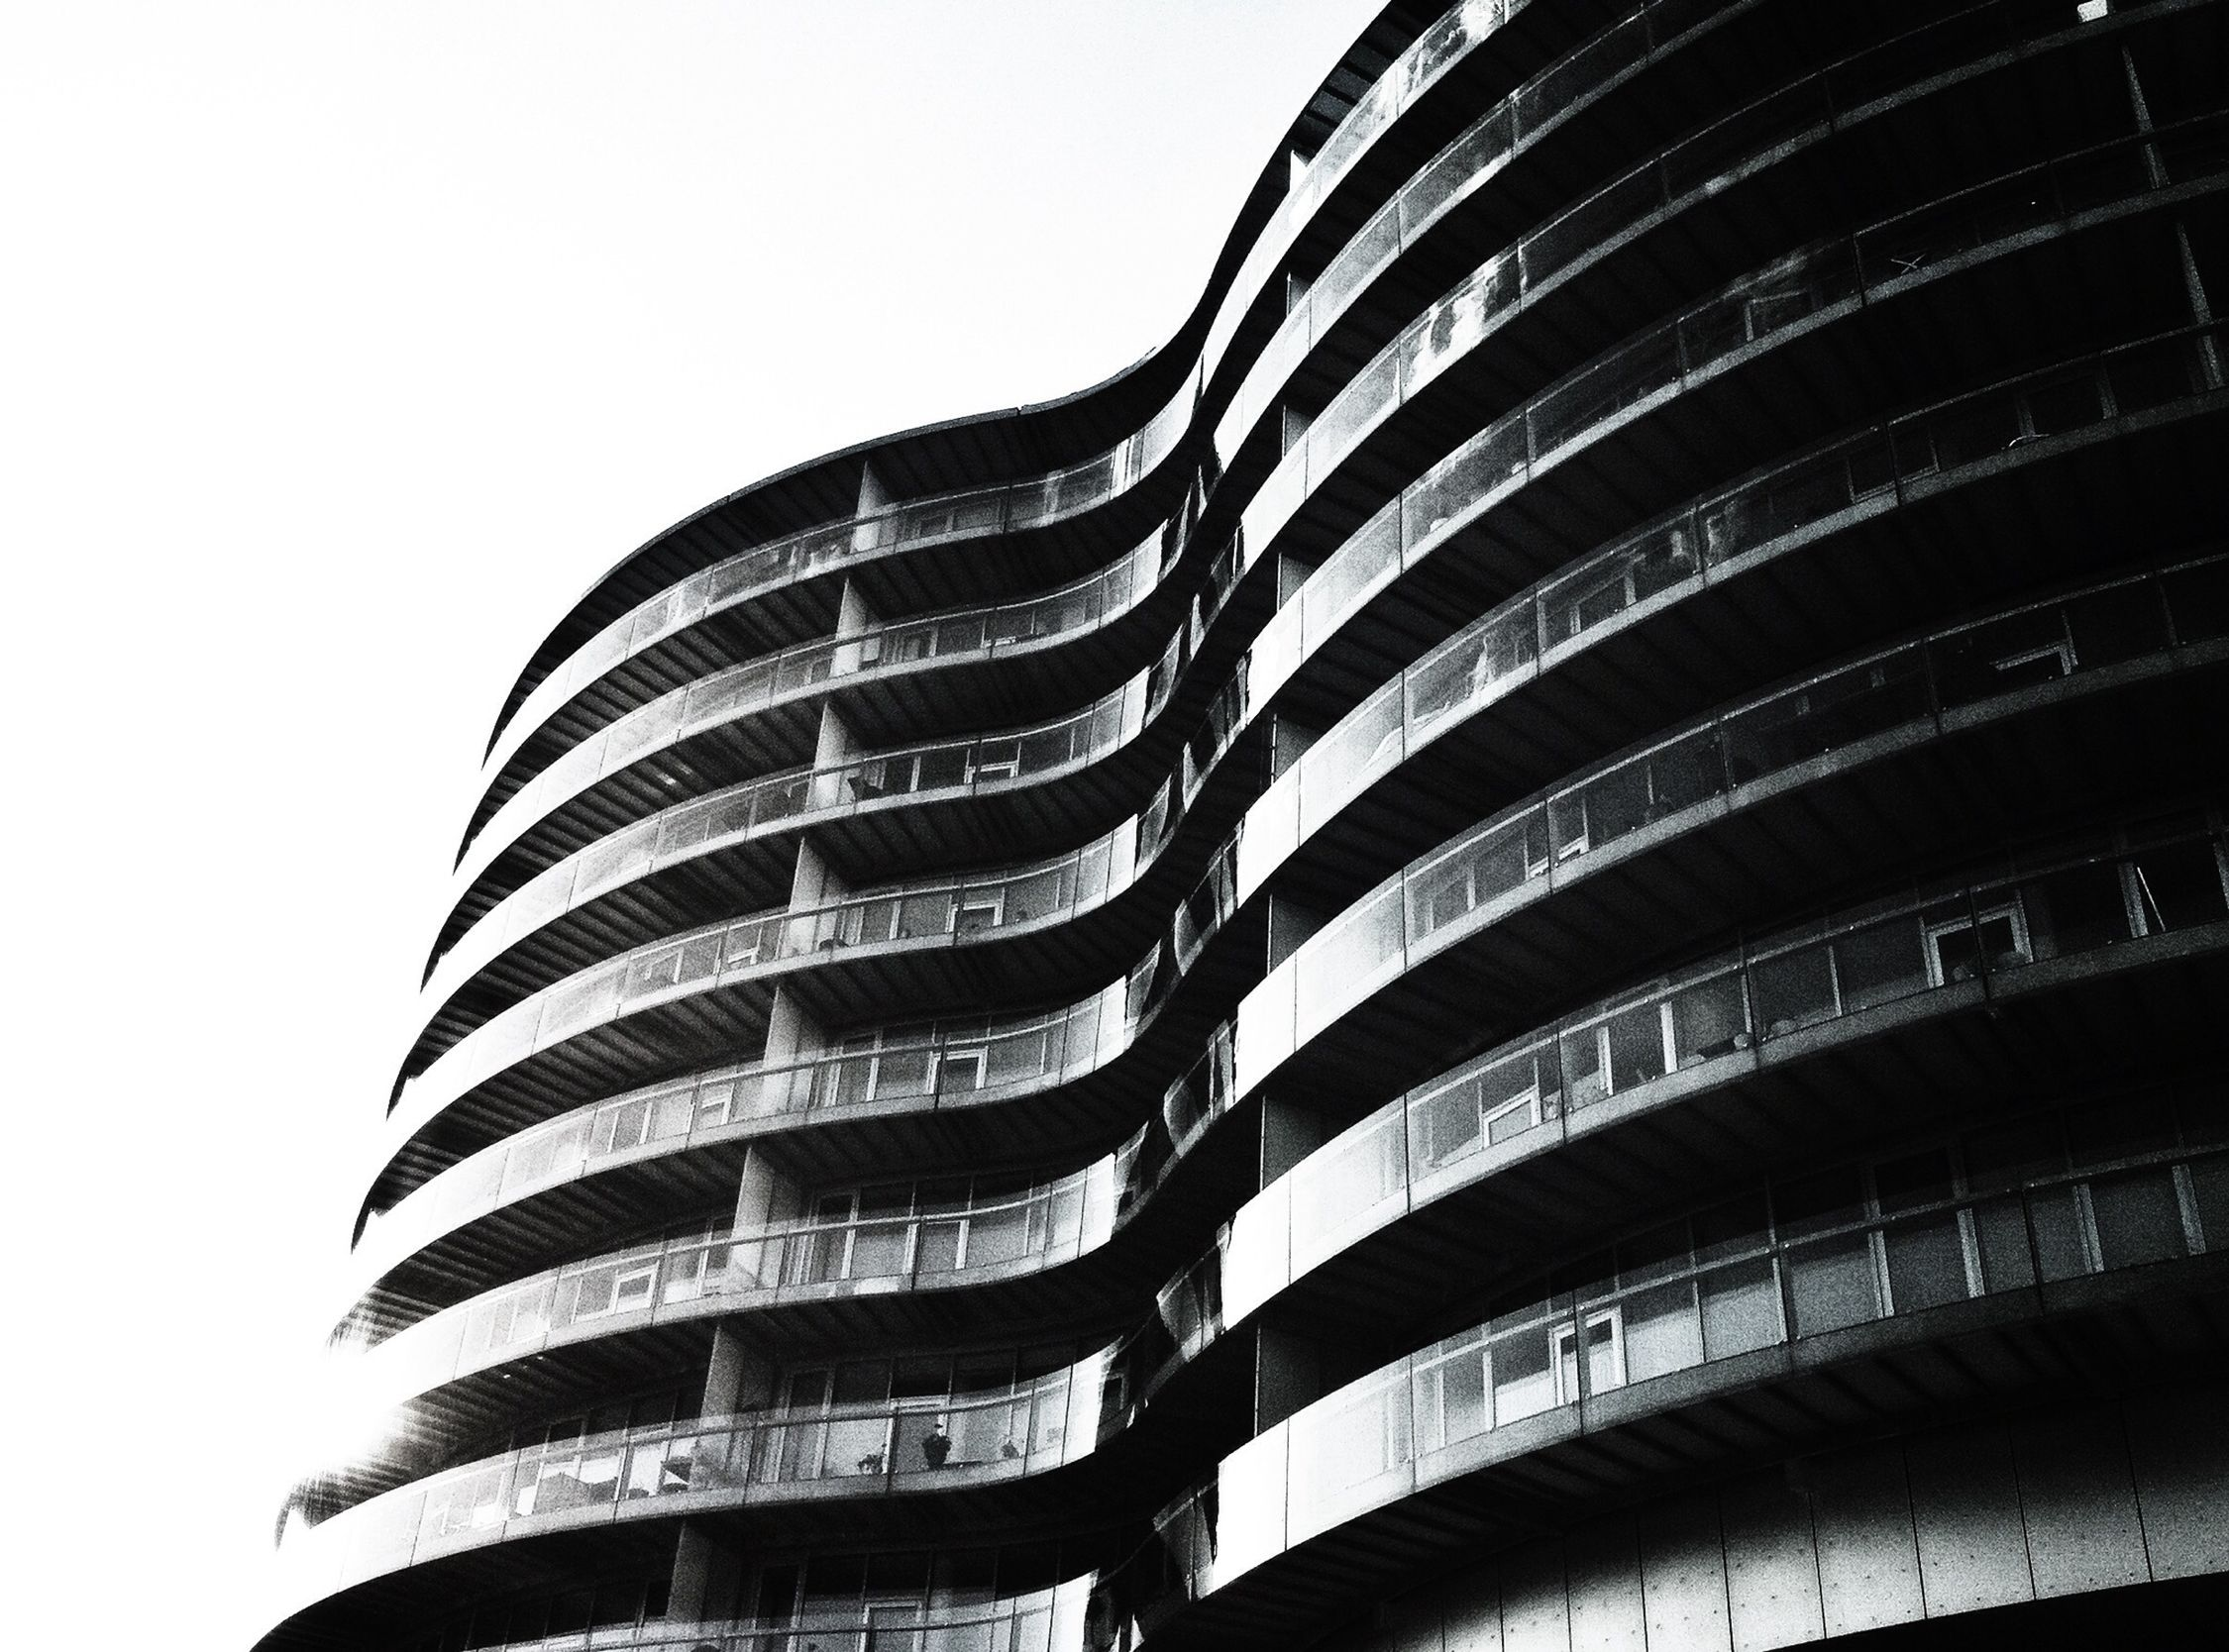 Architecture Blackandwhite Black And White Filippa K Asks: What Inspires You?